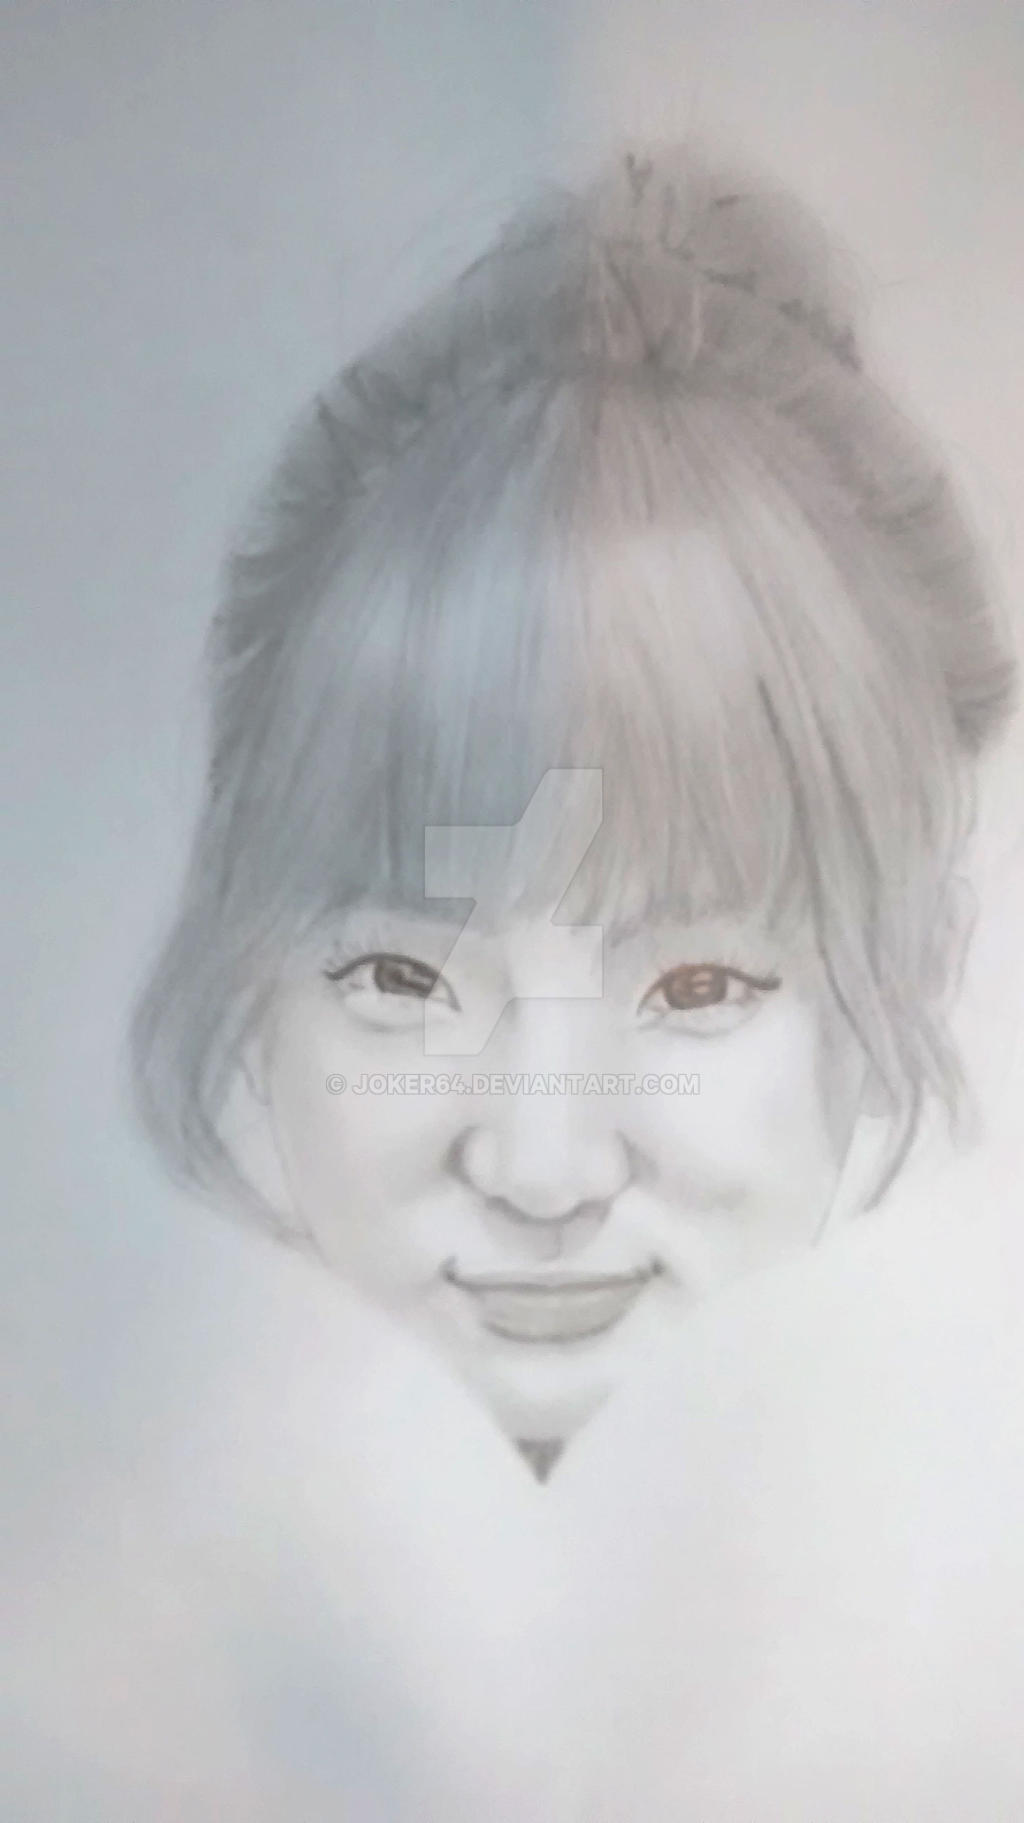 Joo Min Hee Black and white (quickdrawing) by Joker64